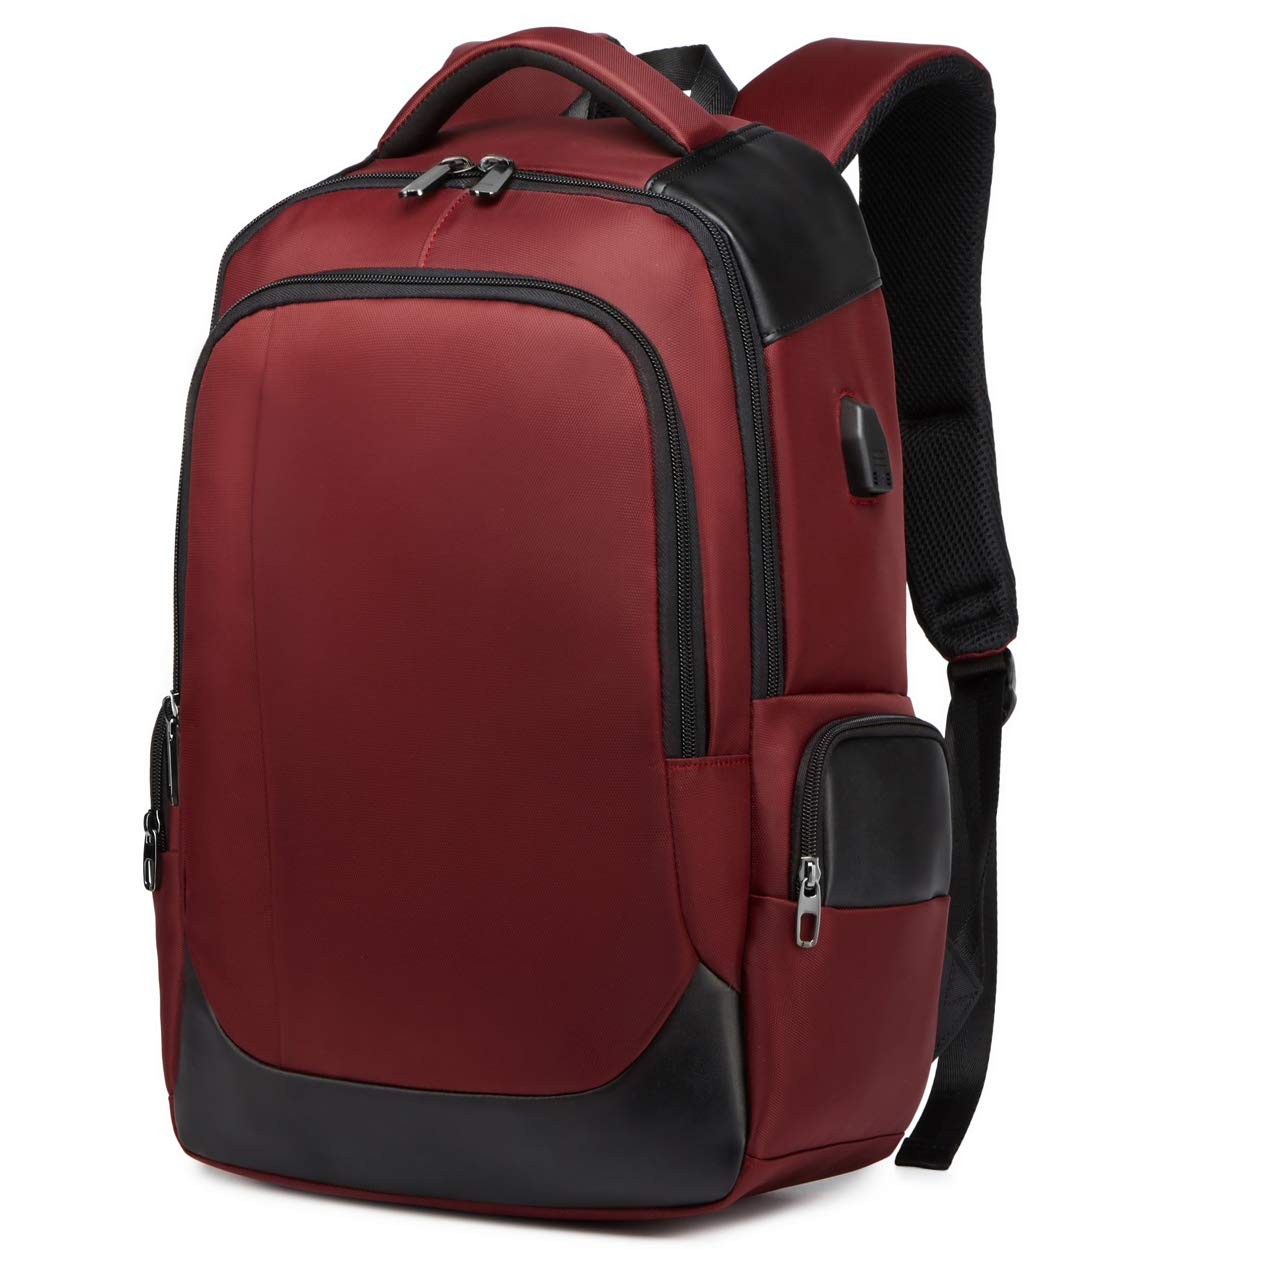 Iswee Business Laptop Backpack Travel Backpack 15.6 Computer Backpack Casual Daypack Anti-Theft Durable School College Bag